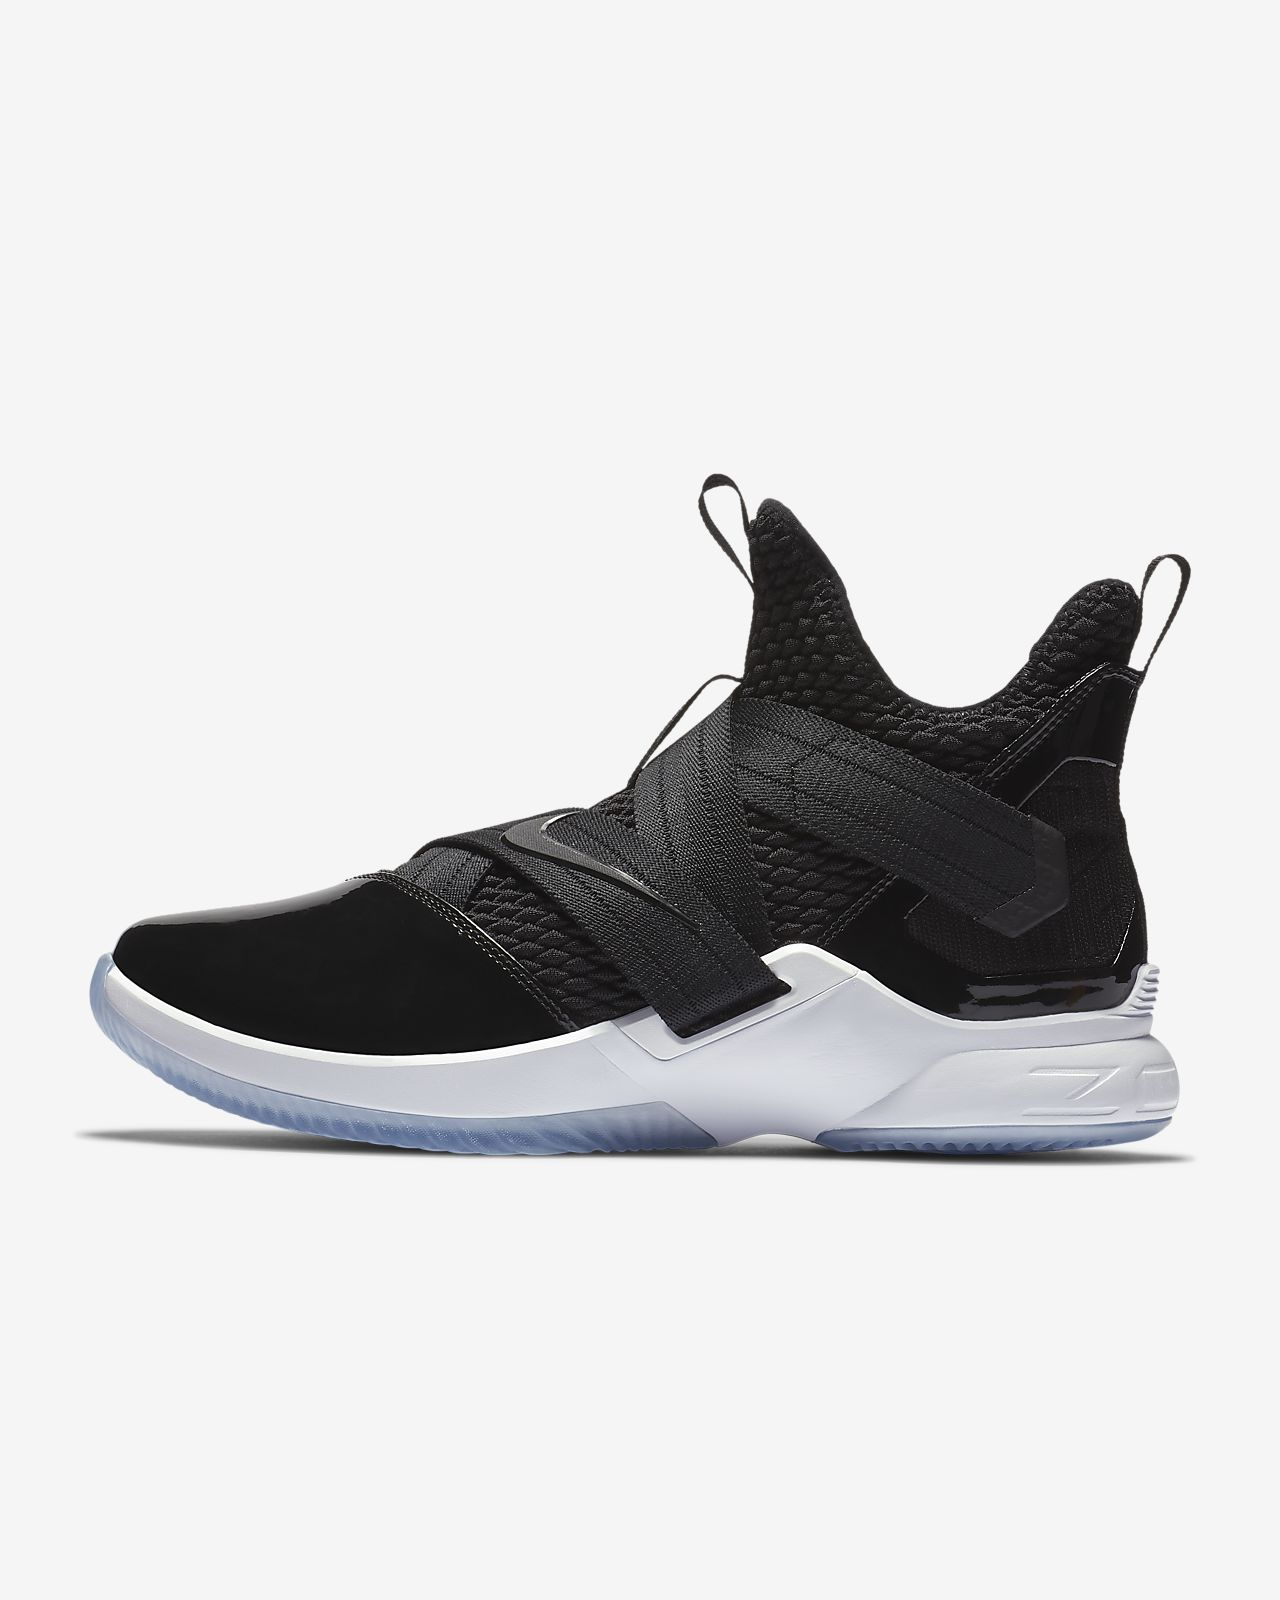 timeless design c6244 606f2 LeBron Soldier 12 SFG Basketball Shoe